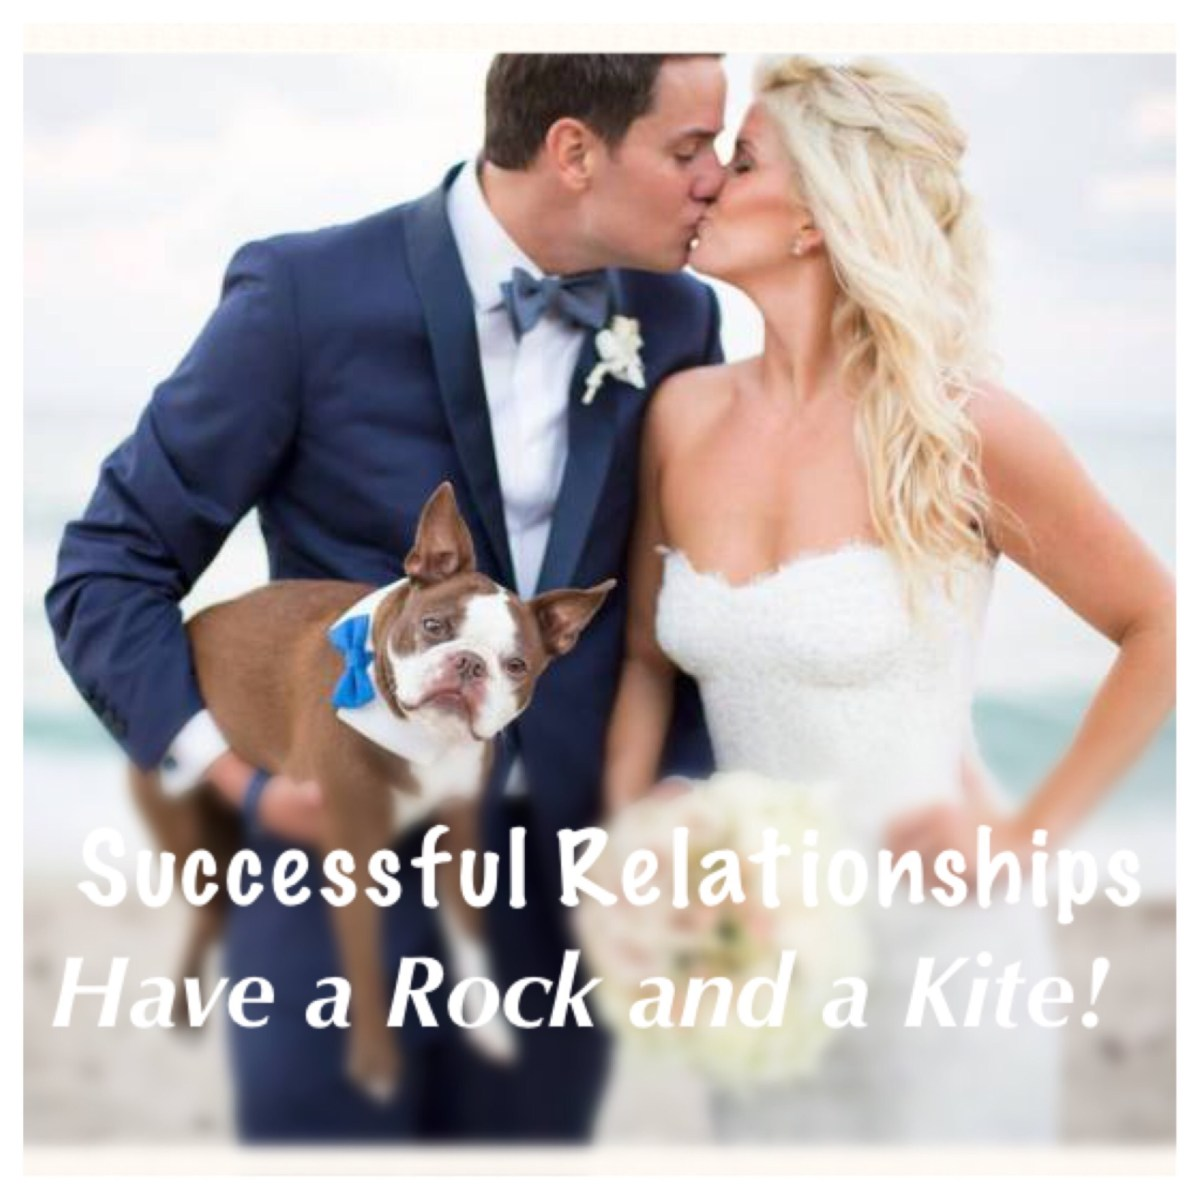 Successful Relationships have a Rock and a Kite – Which are you?